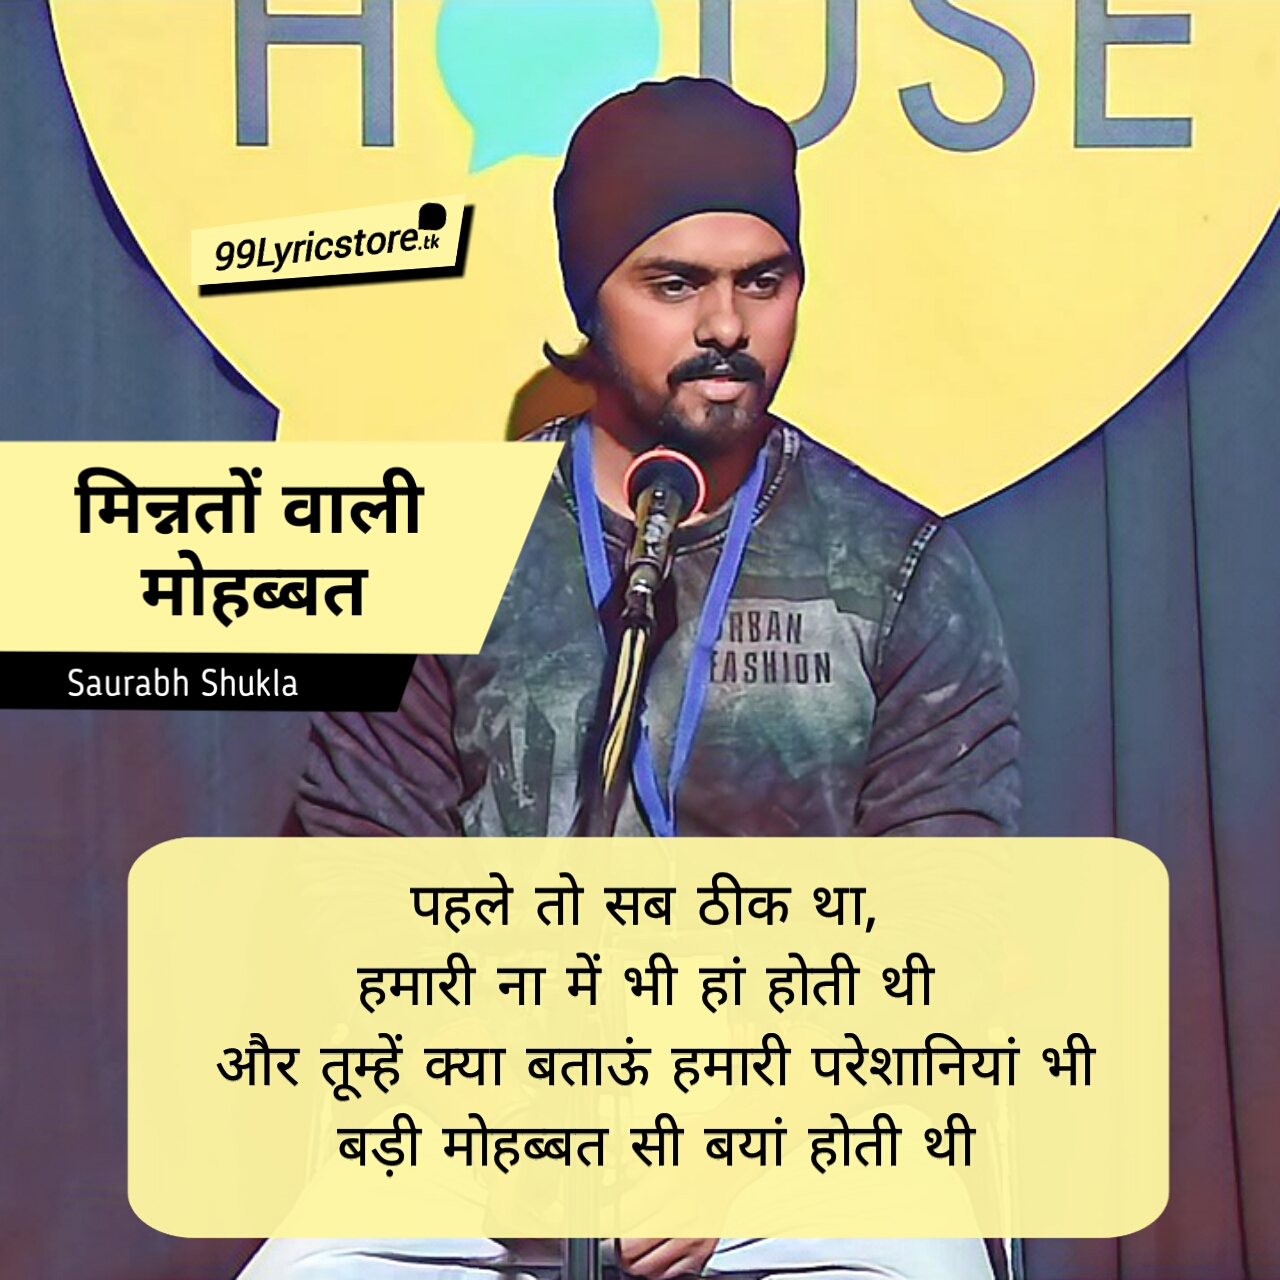 मिन्नतों वाली मोहब्बत By Saurabh Shukla | The Social House Poetry, the social house poetry in Hindi, minnto wali Mohabbat lyrics in Hindi, the social house video, the social house image, Love poetry, love shayari, love Quotes, Saurabh Shukla Love poem in Hindi with video download.